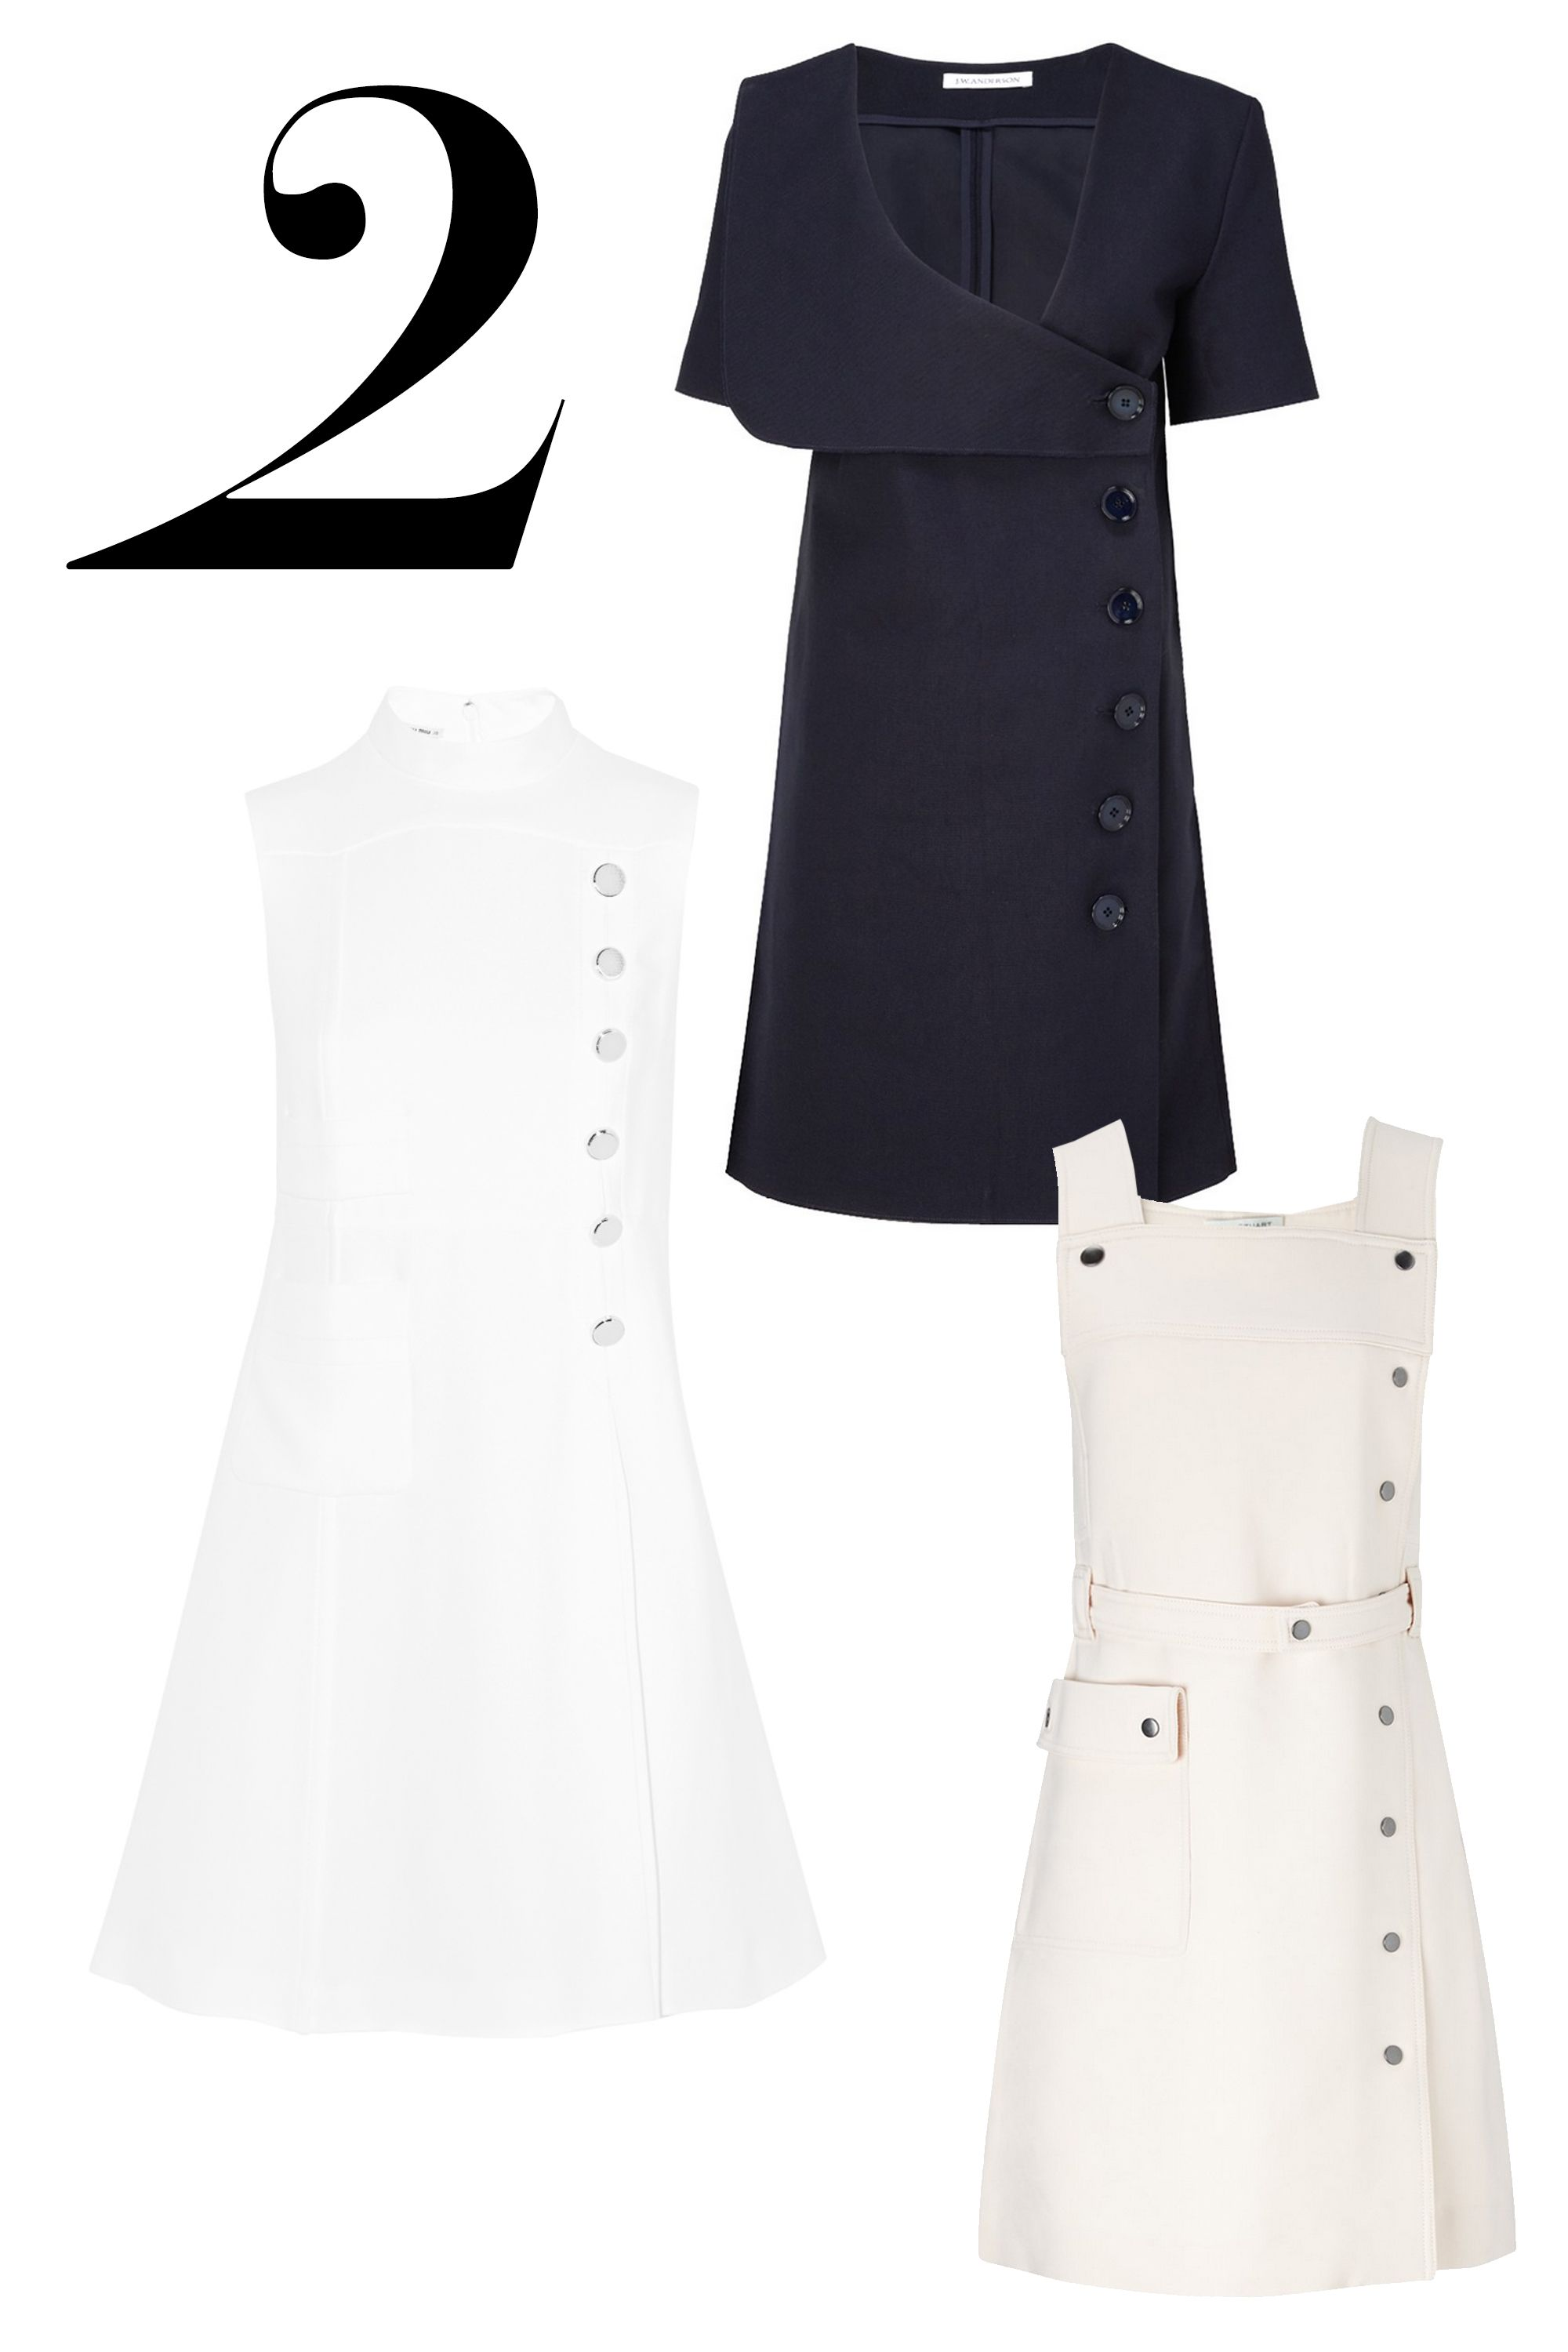 "<div>The detail du jour is the statement button with a nautical attitude.</div><div> </div><div><em>J.W Anderson, $1,115, <a target=""_blank"" href=""http://www.avenue32.com/us/navy-bonded-cotton-sailor-dress-78501/"">avenue32.com</a>; Miu Miu, $2,280, <a target=""_blank"" href=""http://www.net-a-porter.com/product/522830/Miu_Miu/embellished-pleated-cady-dress"">net-a-porter.com</a>; </em><em>Jill Stuart, $785, <a target=""_blank"" href=""http://www.avenue32.com/us/canvas-cotton-india-dress-31001/"">avenue32.com</a> </em><em> </em><em> </em>  </div>"